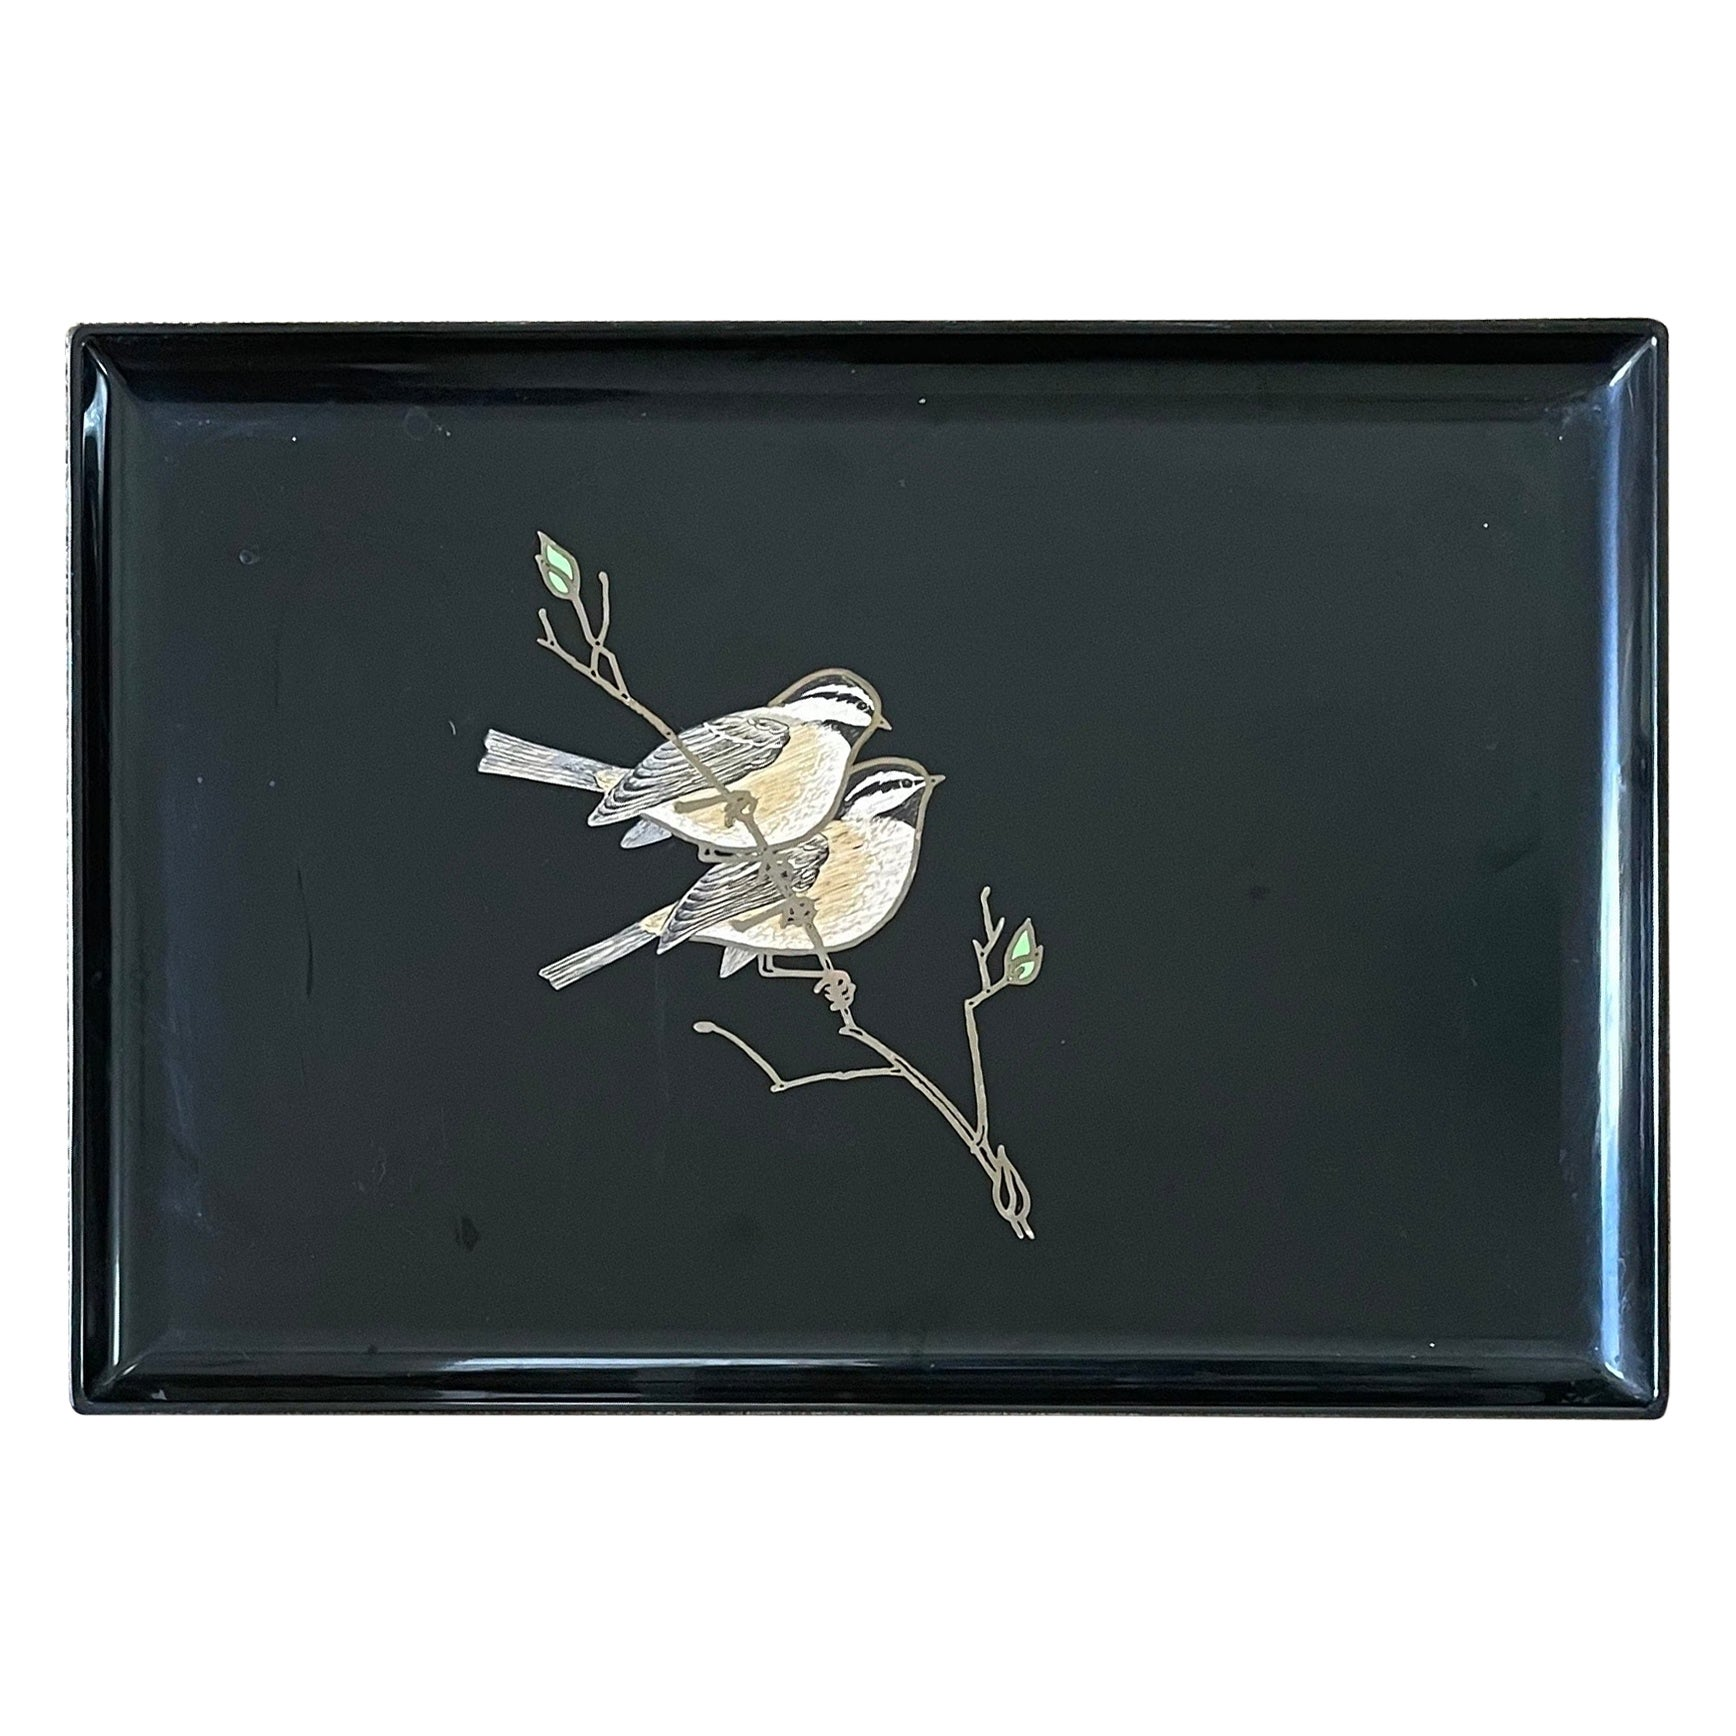 Inlaid Wood Birds / Sparrows Tray by Couroc California